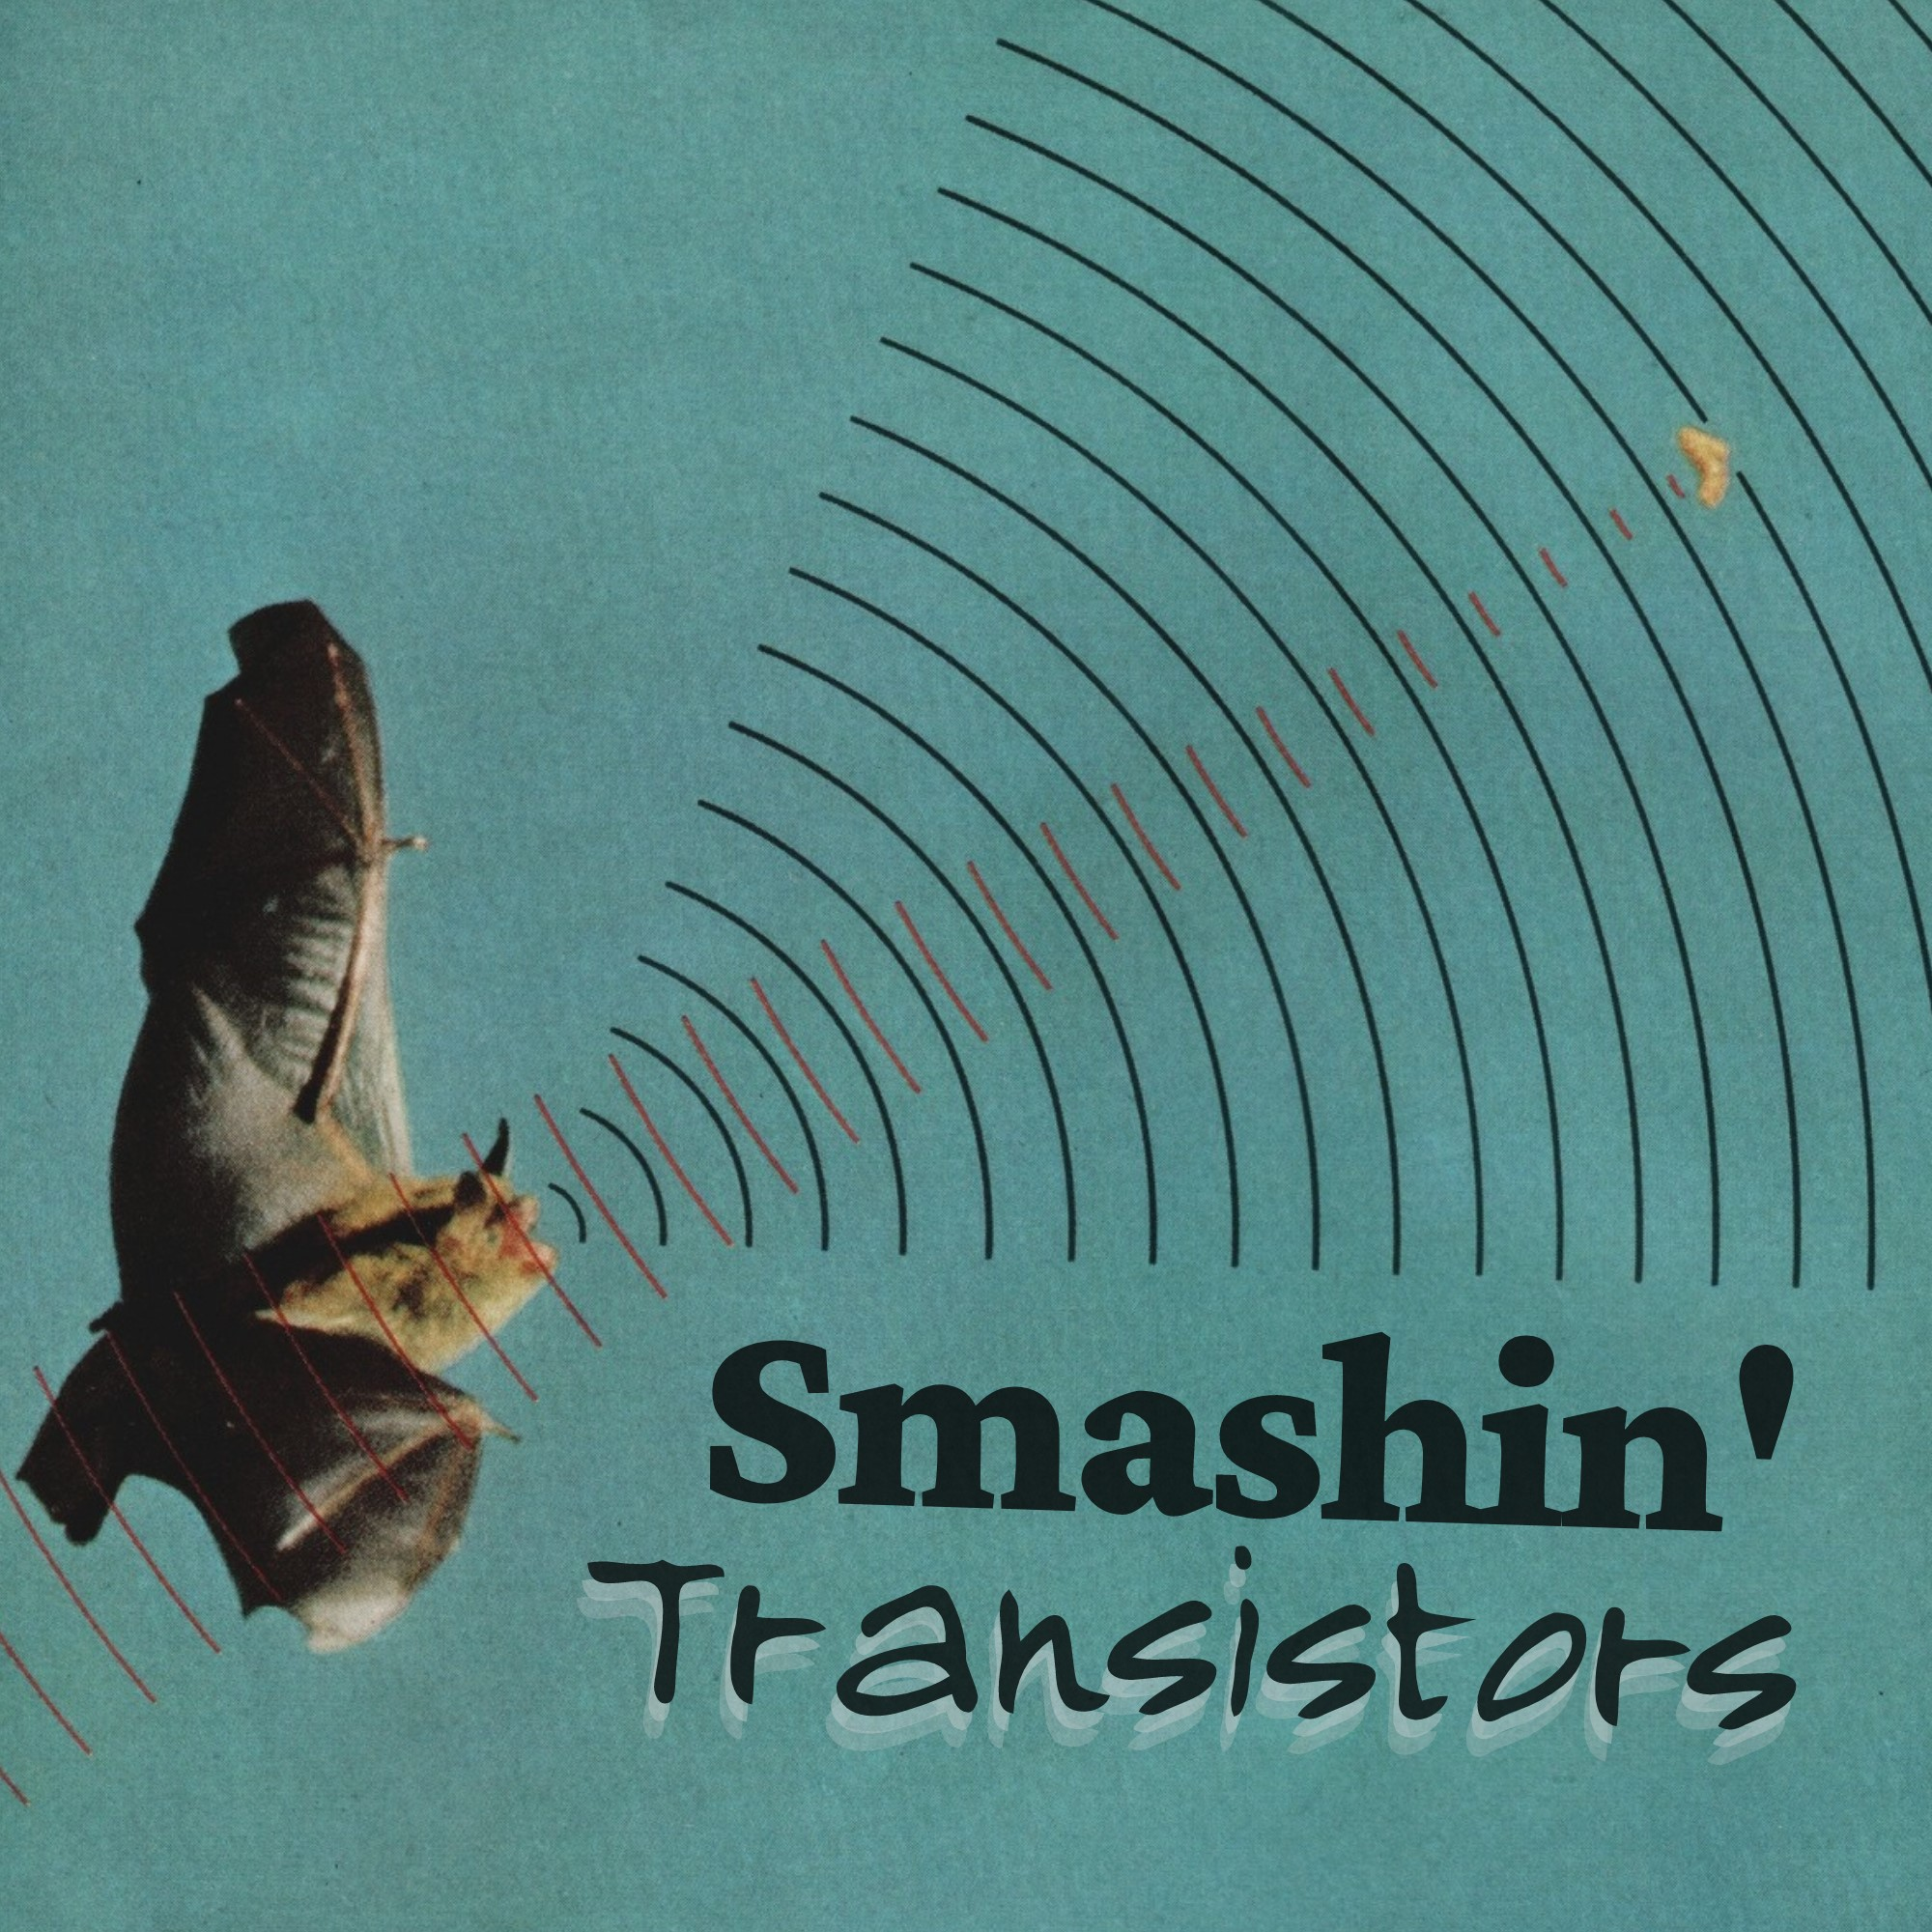 Smashin' Transistors 74: Nothing But Candy Corn in the Treat Bag